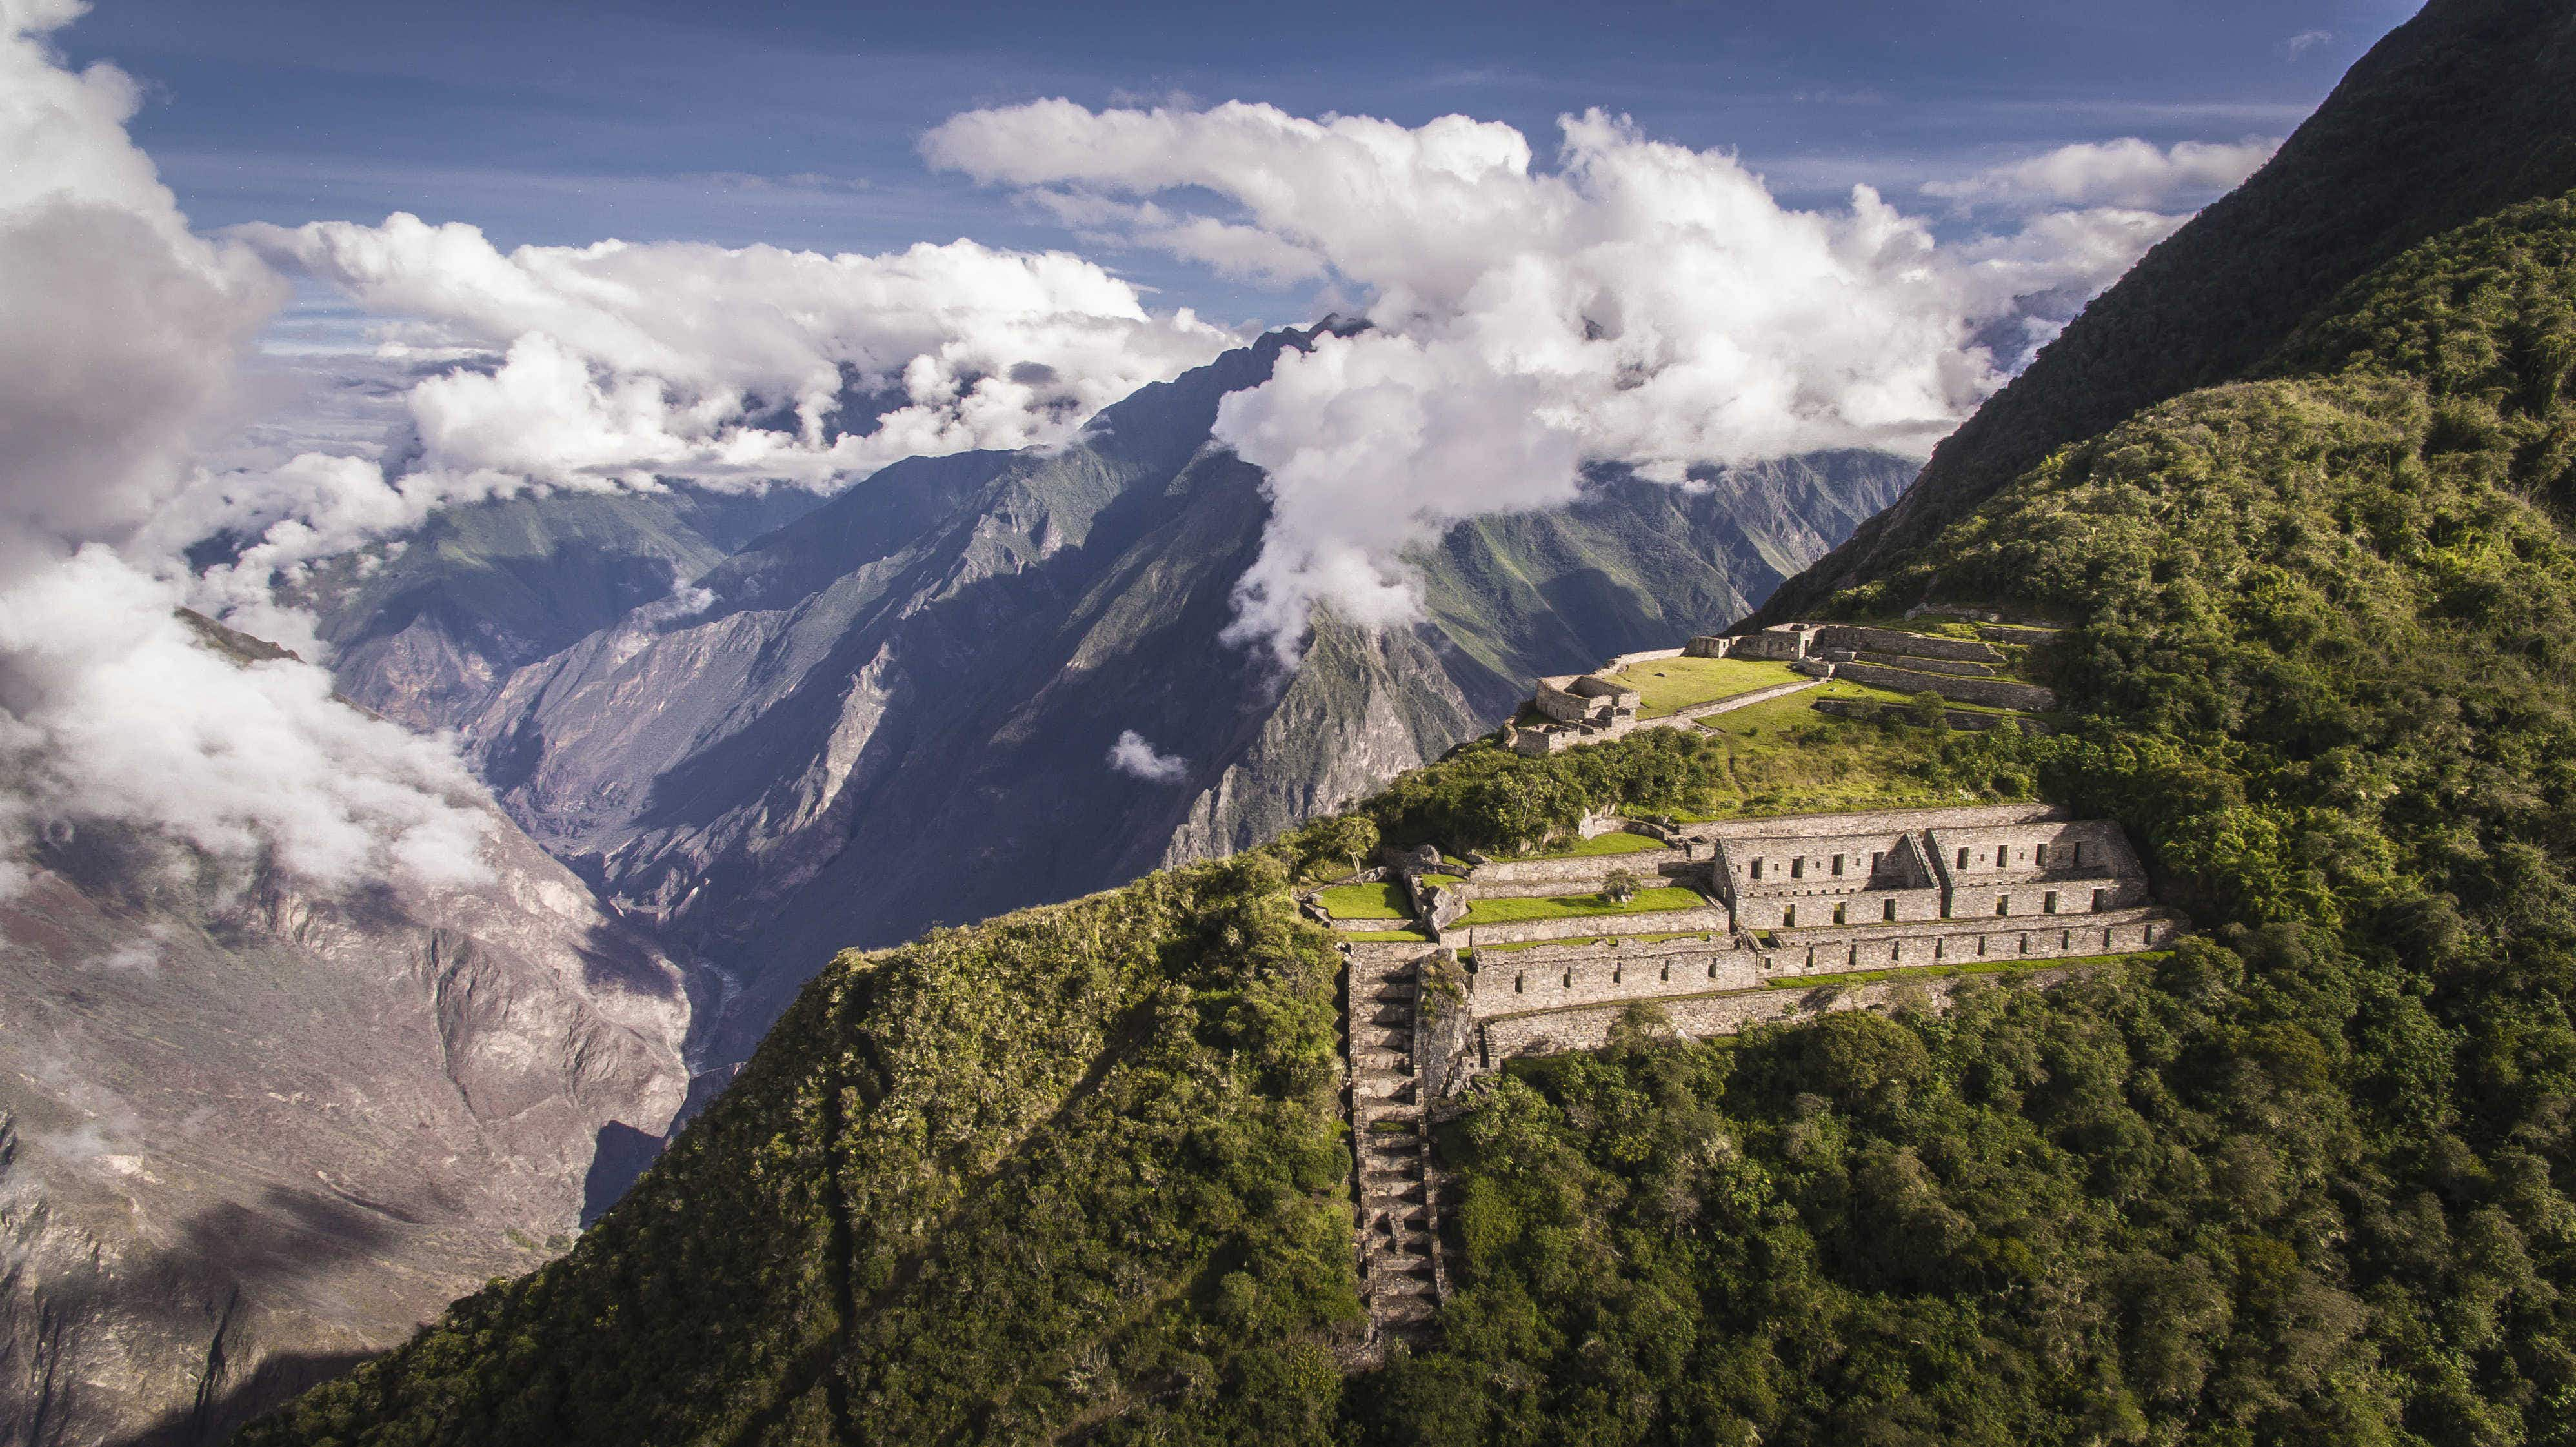 Explore the ancient ruins of Peru's Choquequirao with virtual reality